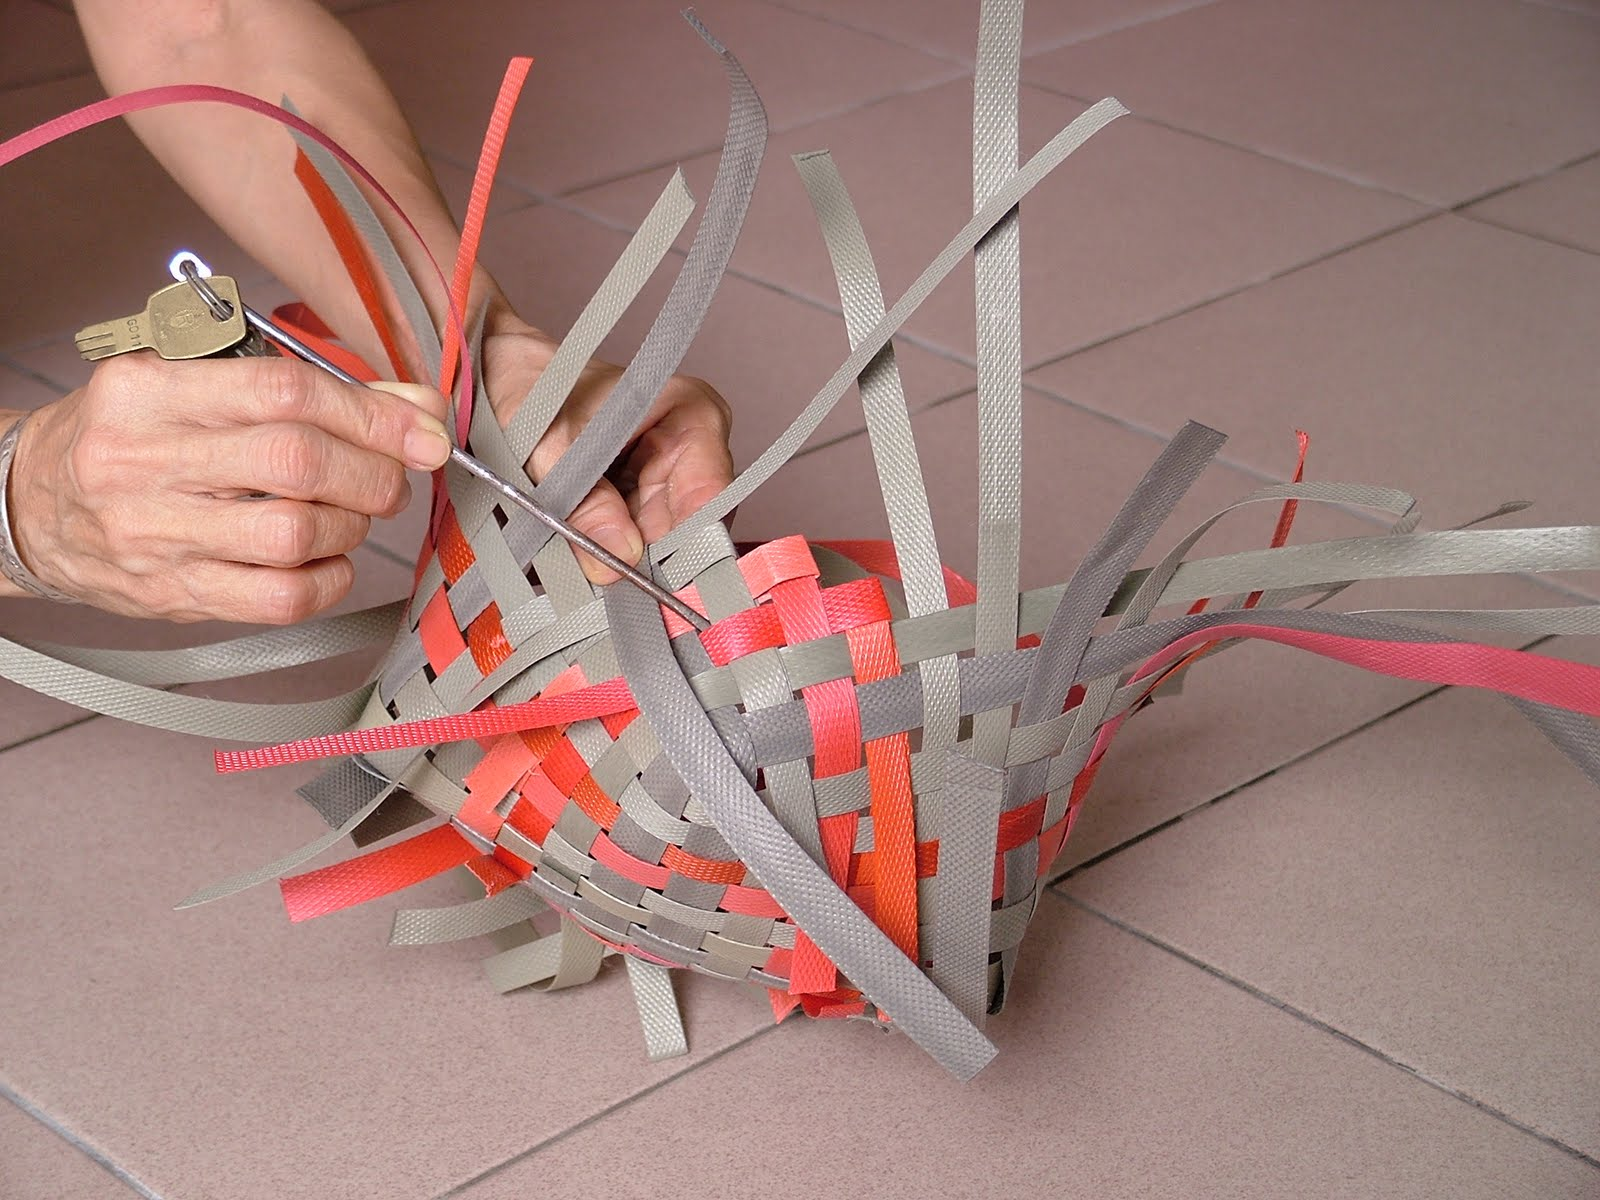 Basket Weaving Using Recycled Materials : Basketry recycled material spot using